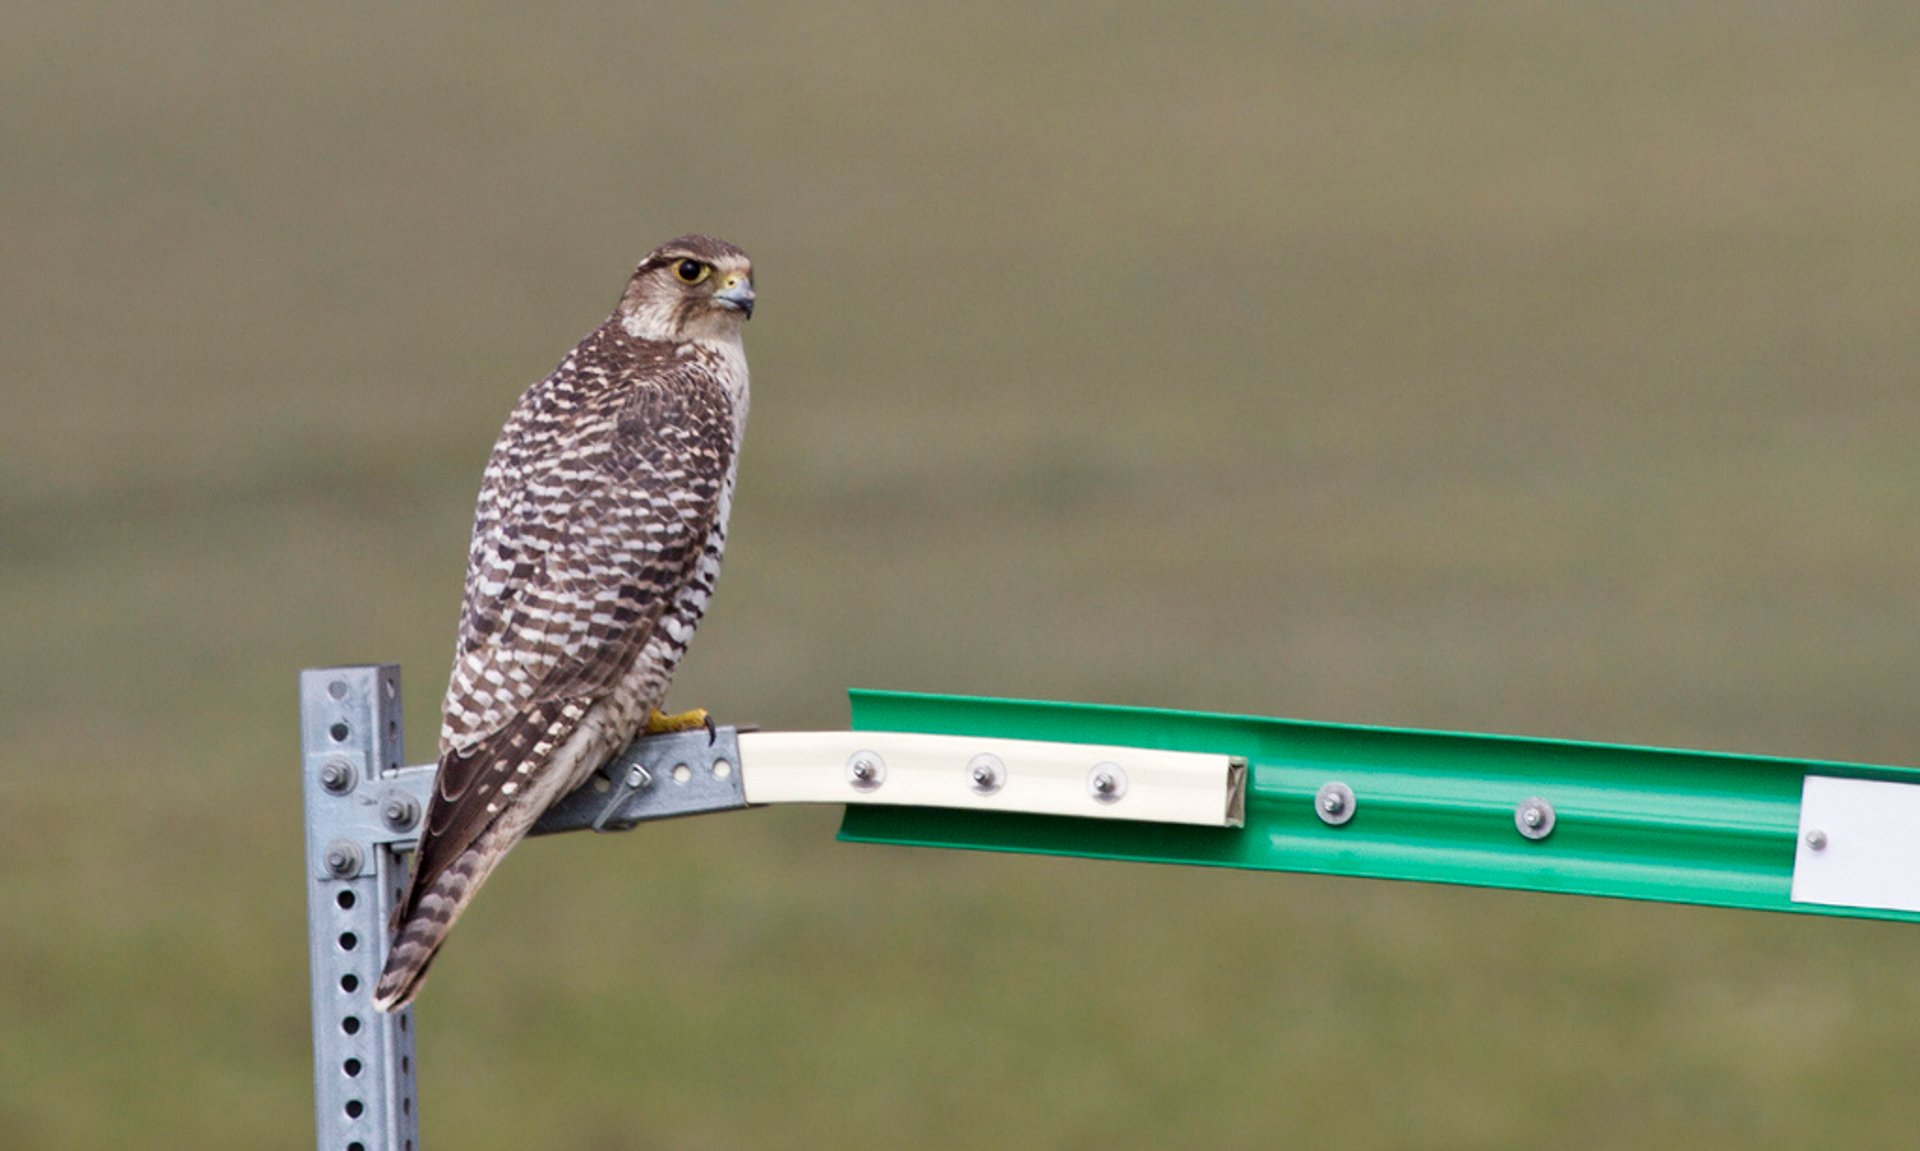 Gyrfalcon, North Slope Borough, Alaska 2019